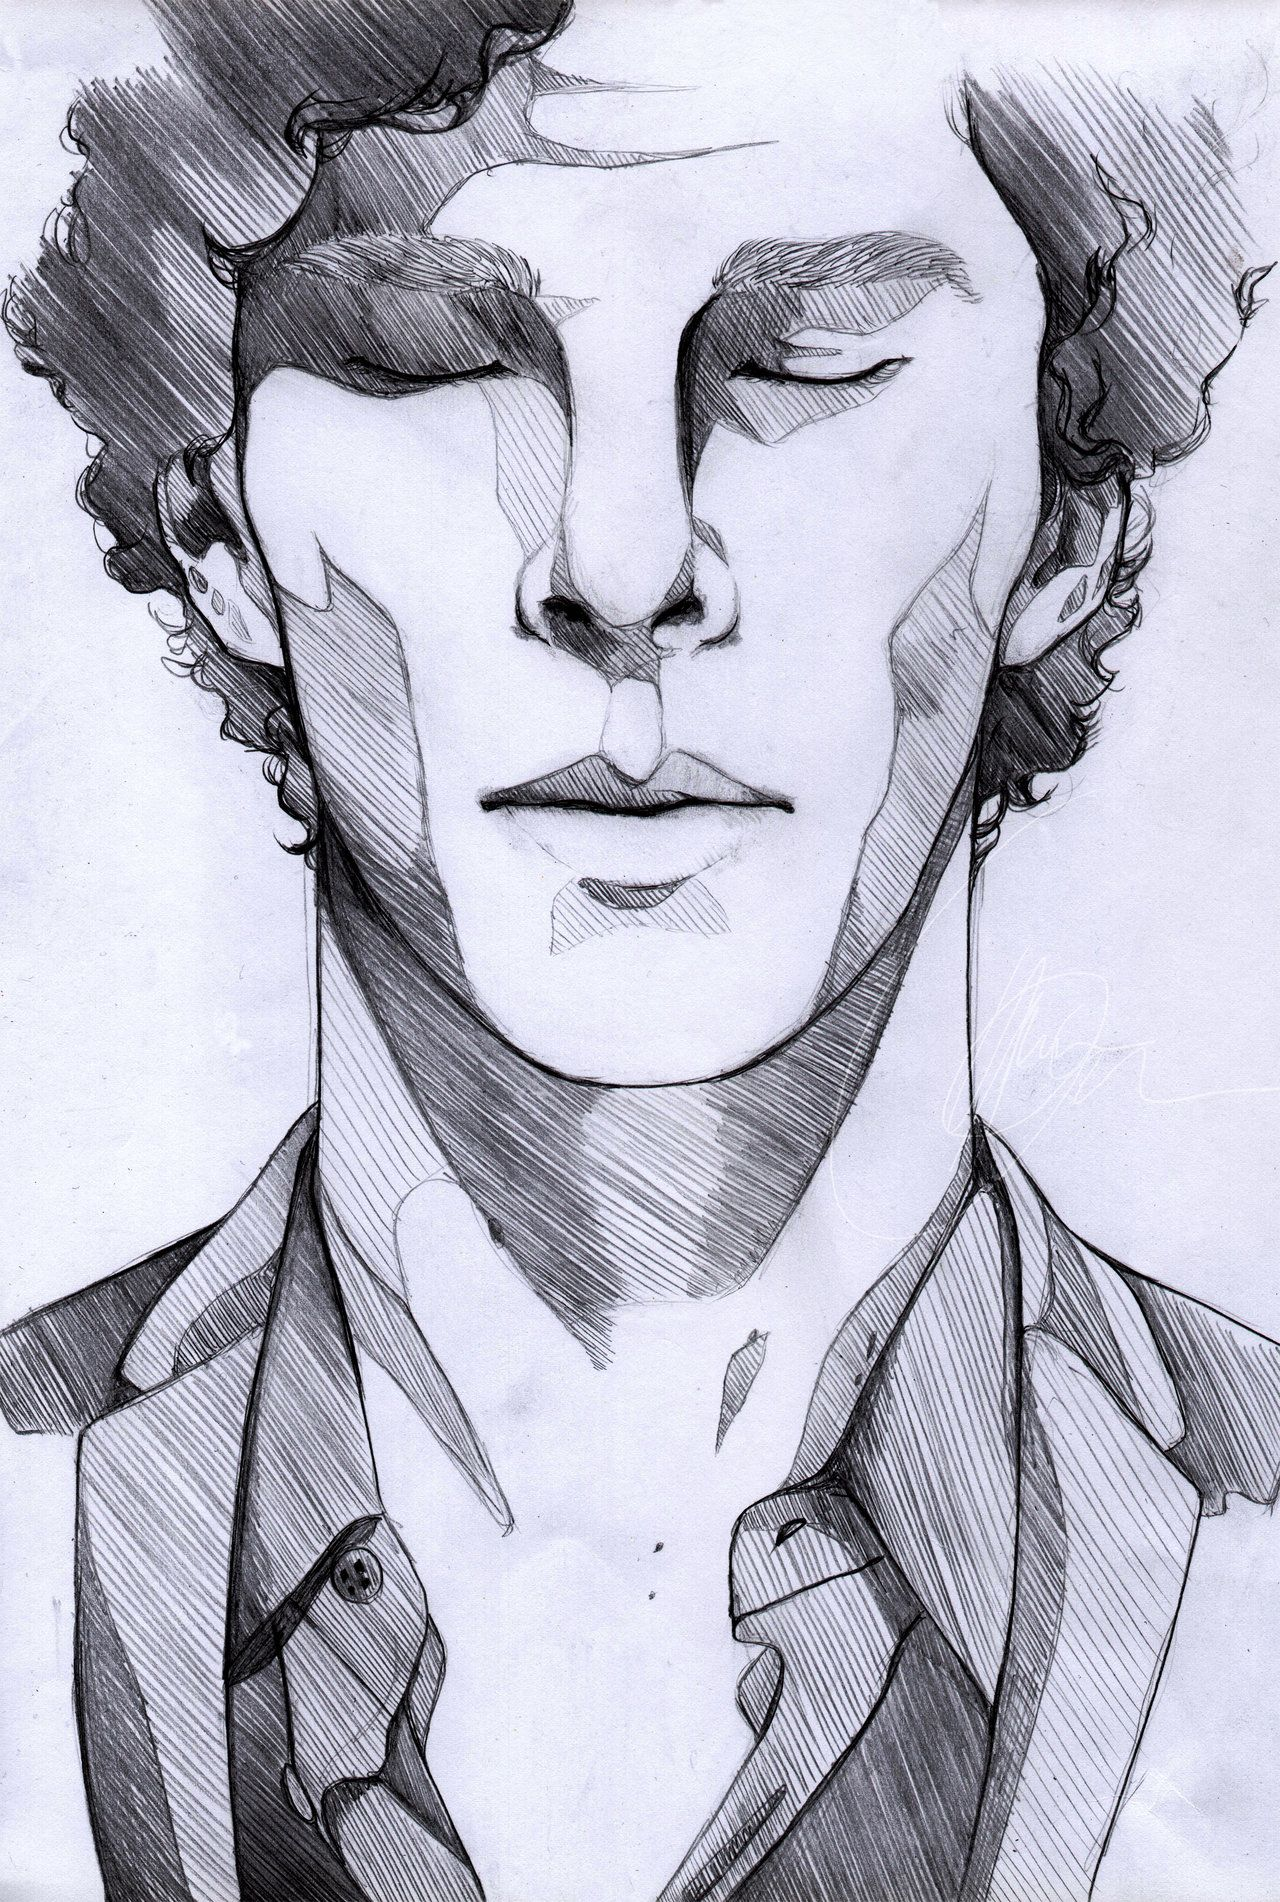 The lonely sherlock by mi caw ber deviantart com on deviantart 3 june 2014 i love this style of shading